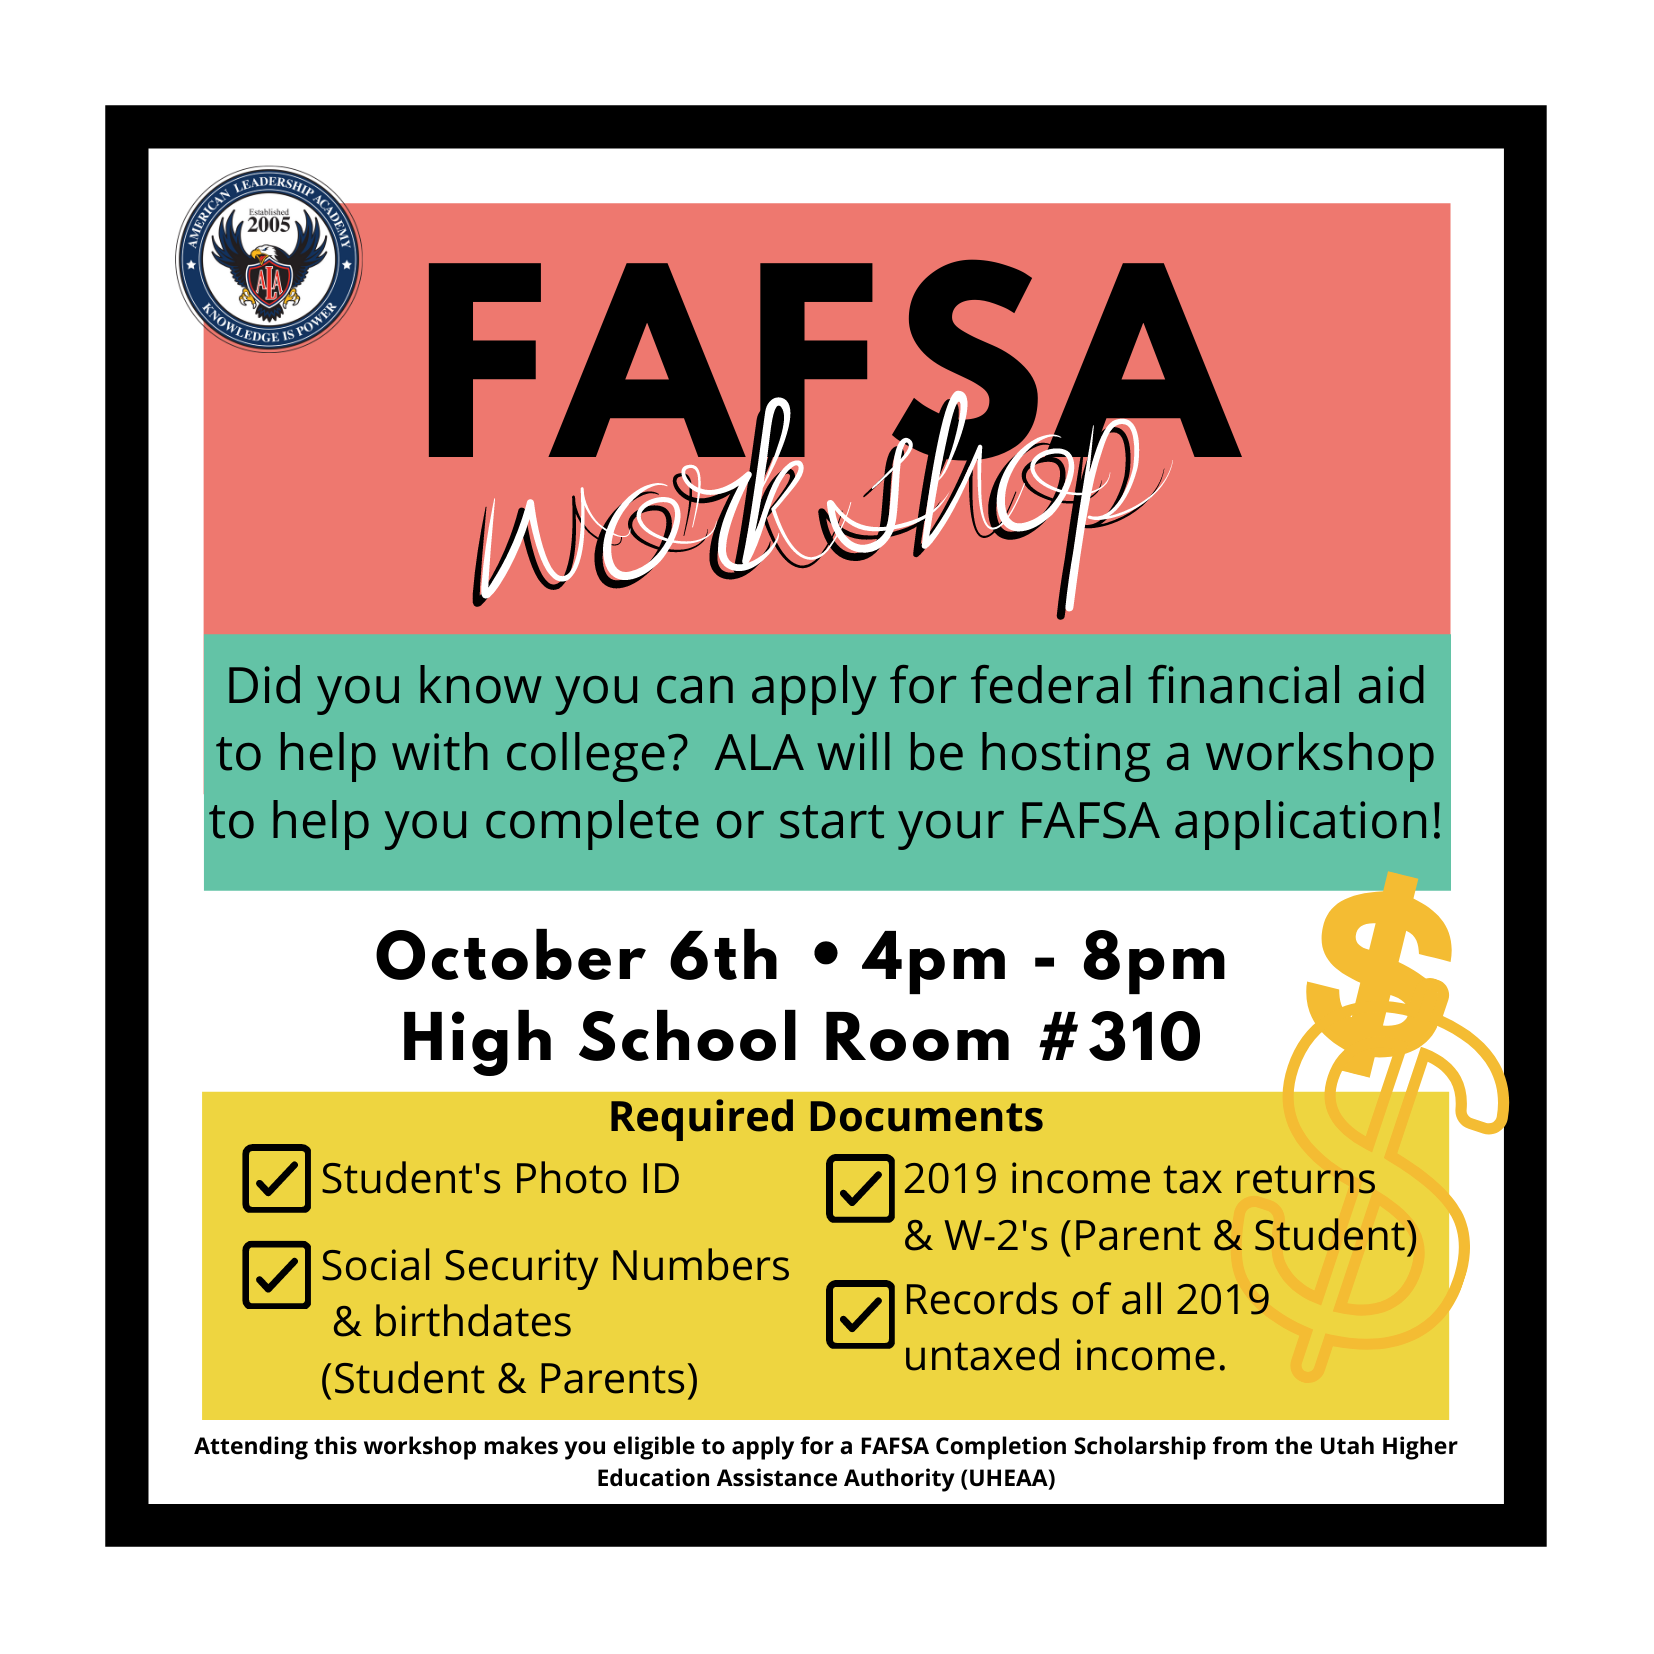 FAFSA WORKSHOP ON OCTOBER 6TH